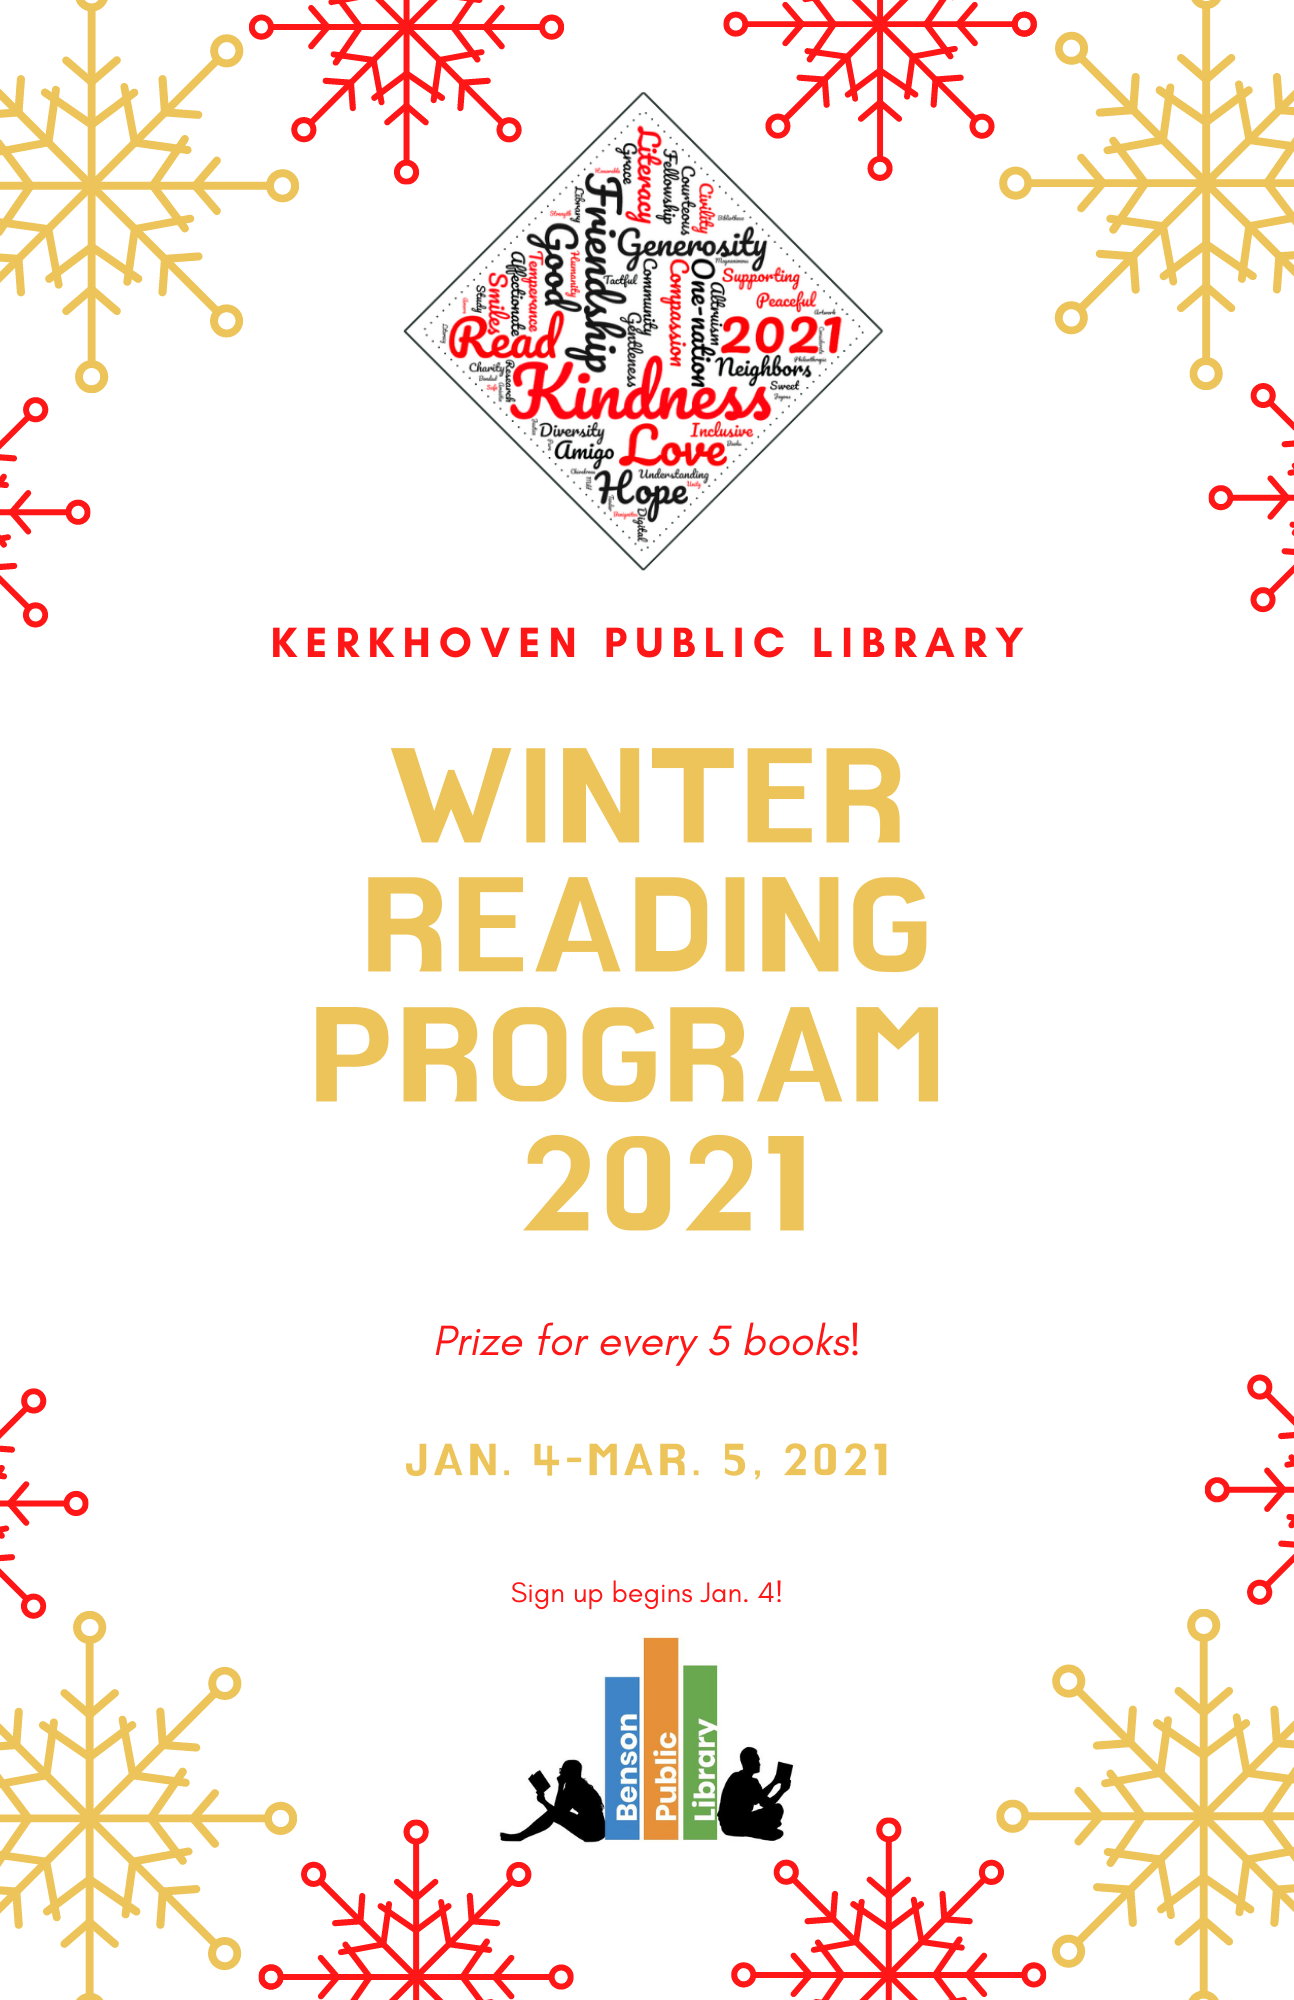 The 2021 Winter Reading Program begins January 4, 2021 and runs through March 5, 2021. For every 5 books read, receive a prize!